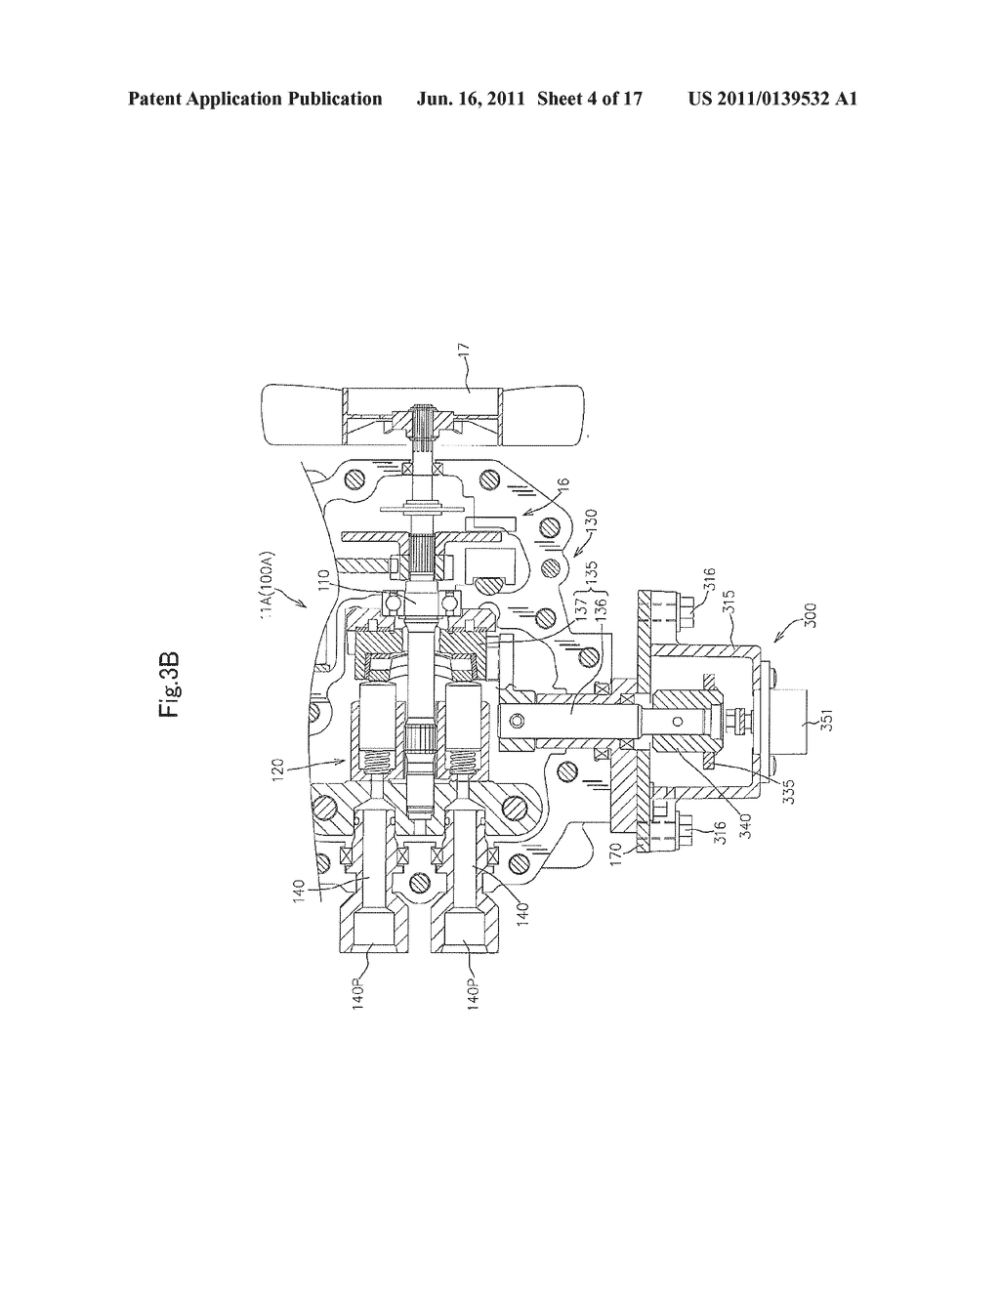 medium resolution of hydraulic motor unit and hydraulic four wheel drive working vehicle diagram schematic and image 05